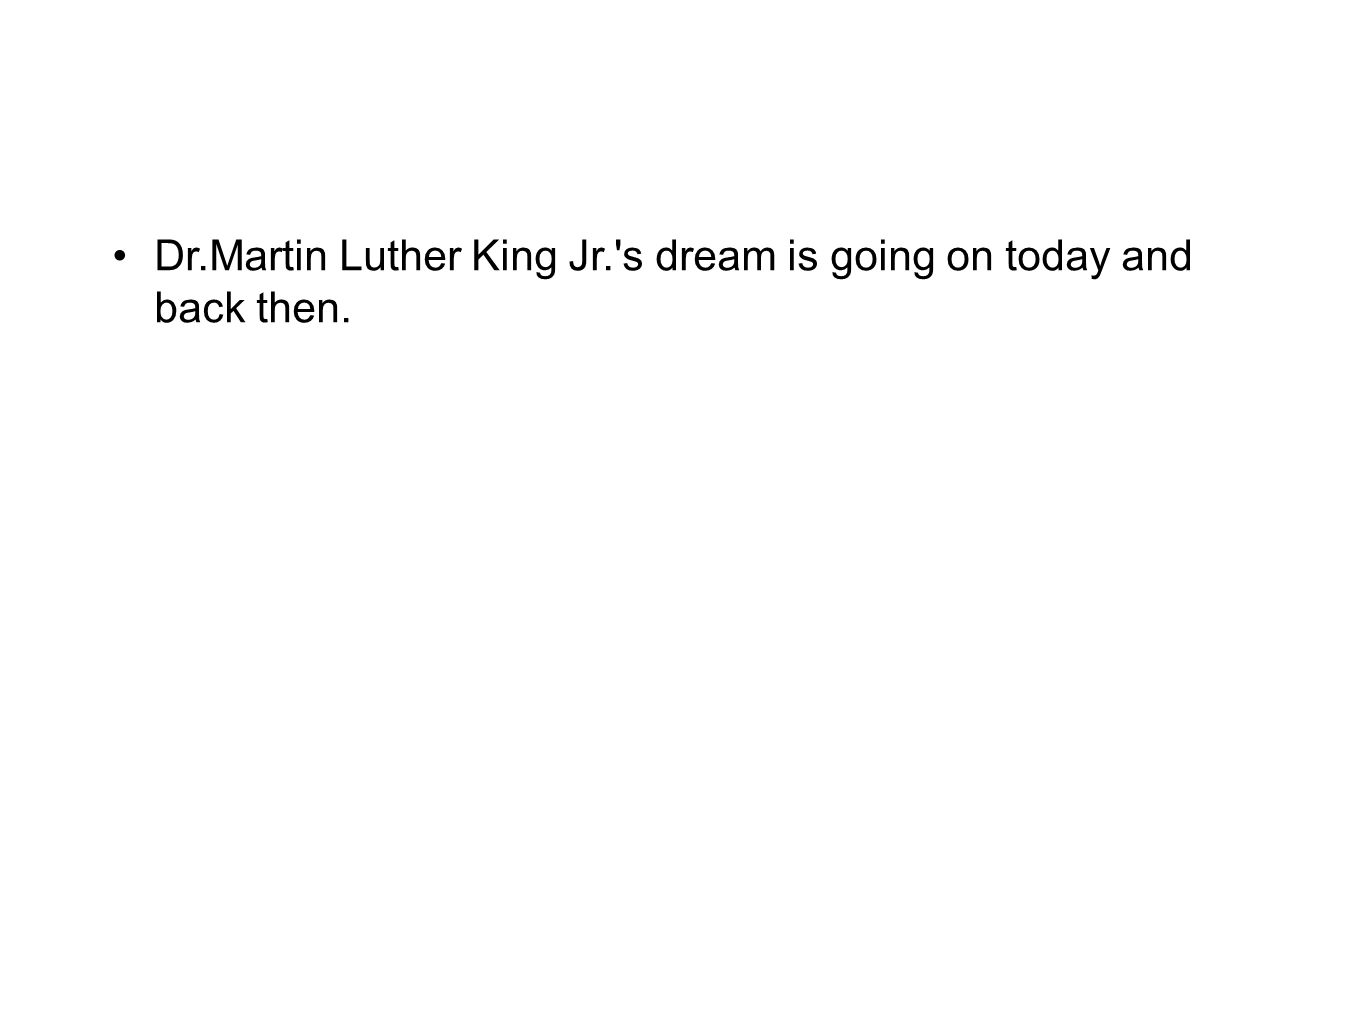 Dr.Martin Luther King Jr. s dream is going on today and back then.